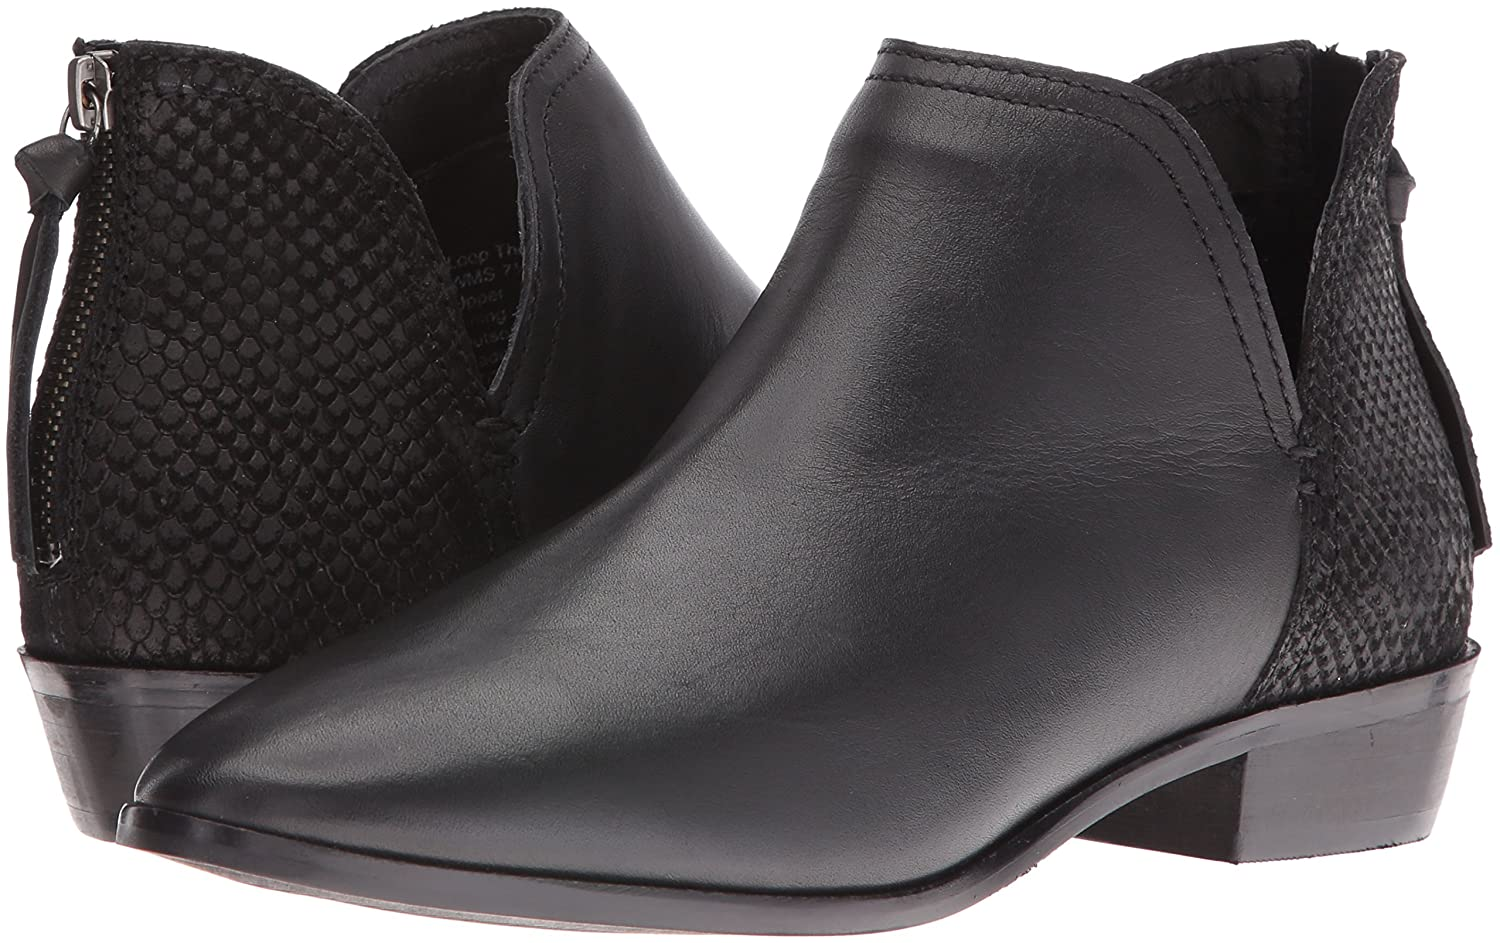 Kenneth Cole REACTION Women's Loop There It is Ankle Bootie B01J5FW5Q2 7.5 B(M) US|Black